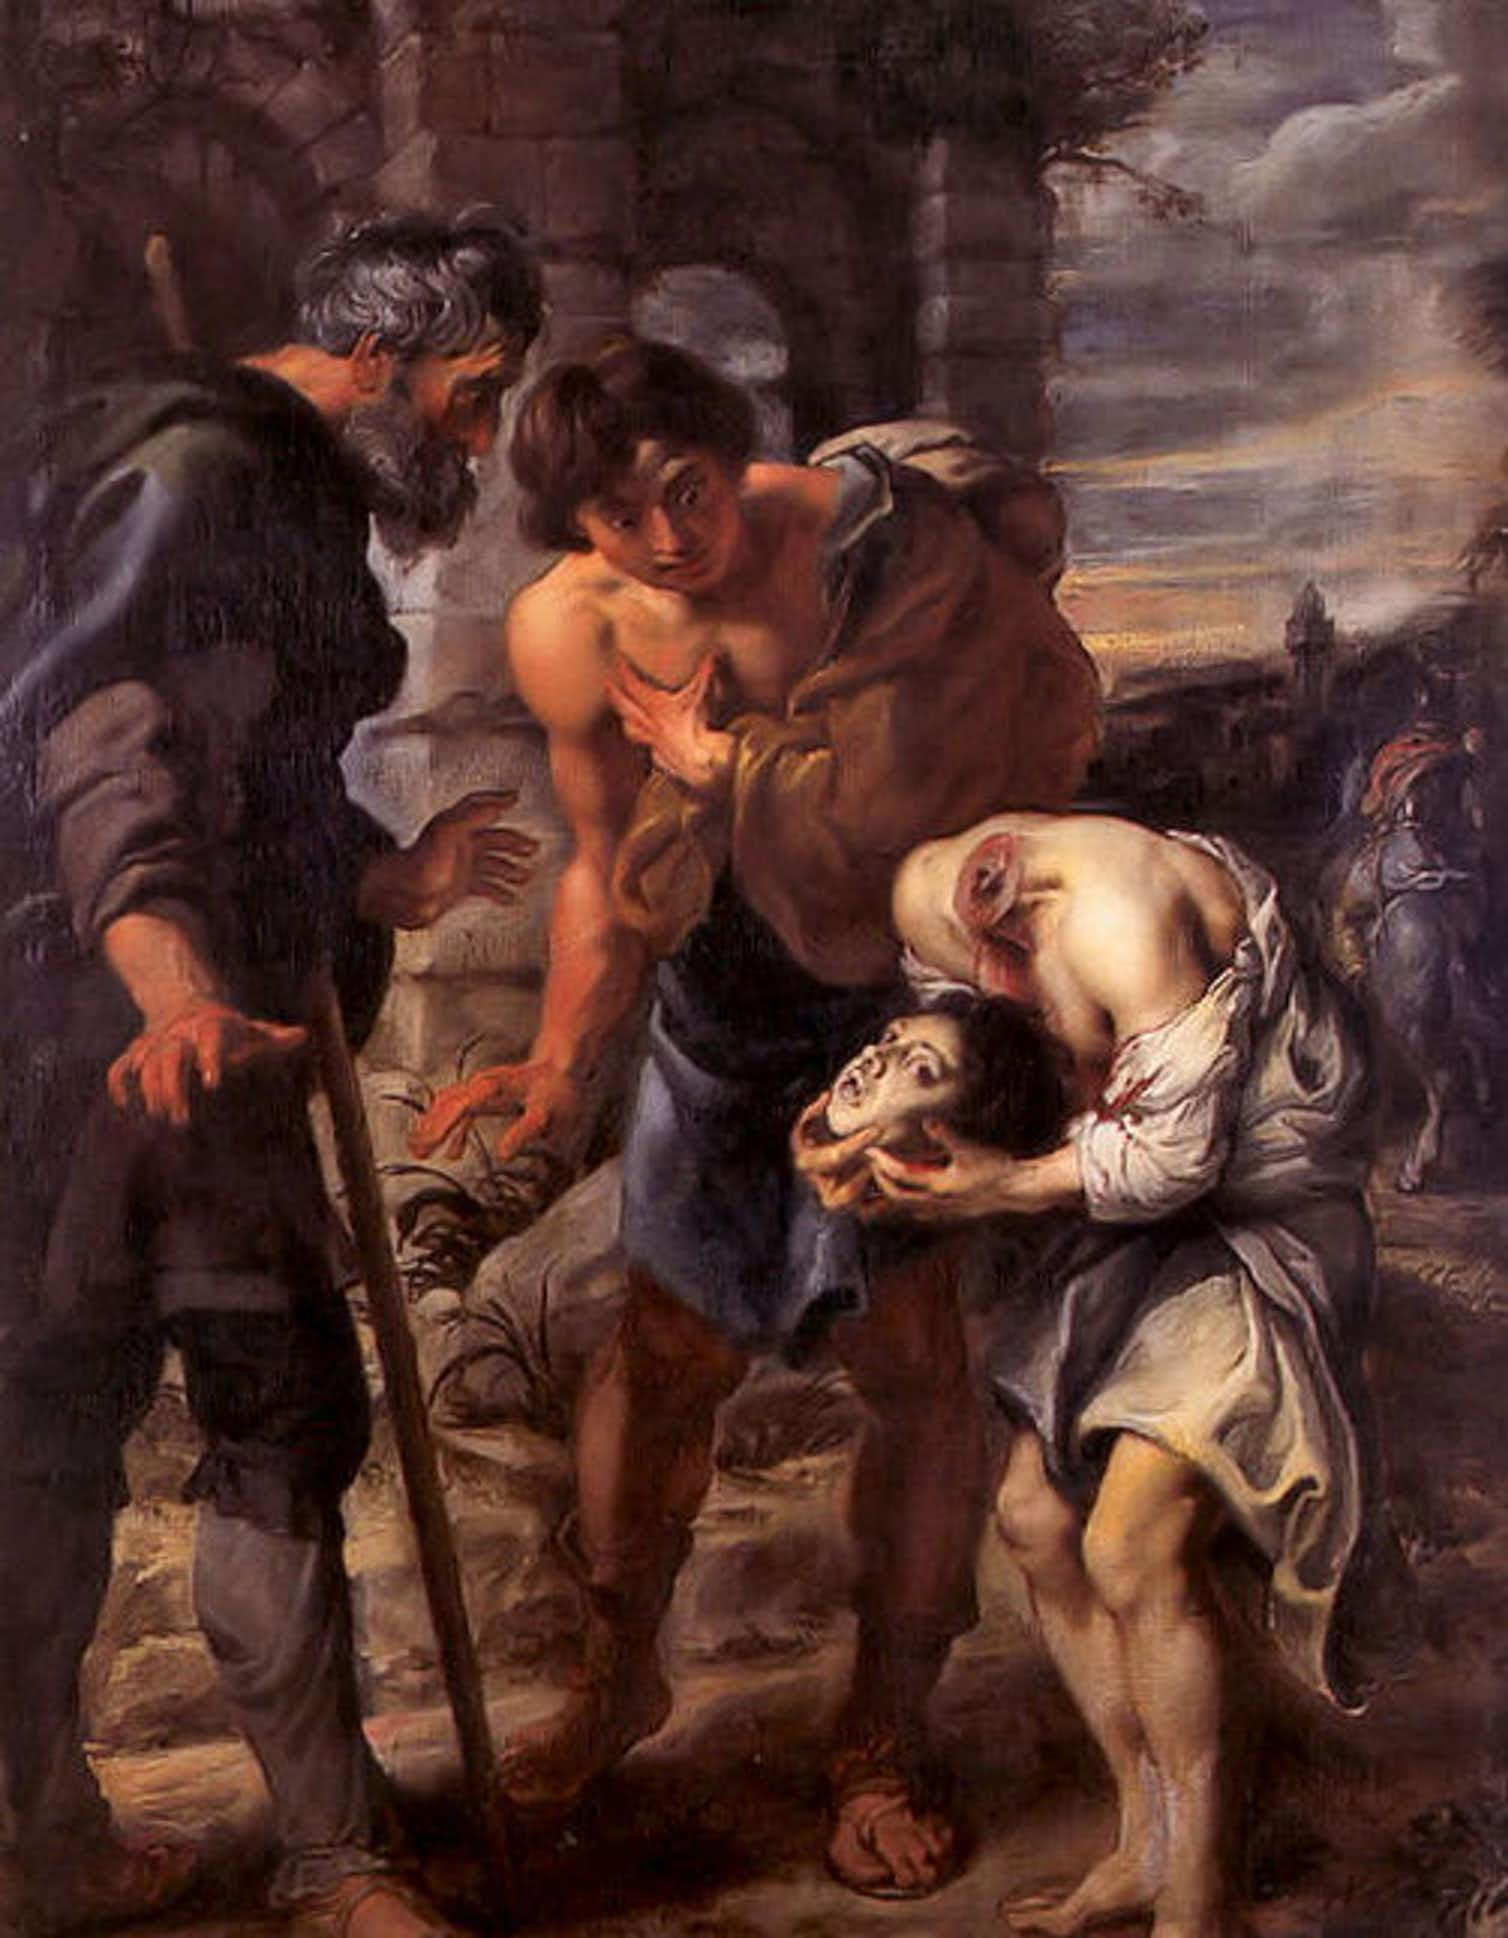 A painting by Sir Peter Paul Rubens illustrates the story of the 9-year-old martyr Justus, who is said to have held his head in his hands after being decapitated. Credit: Wikimedia Commons